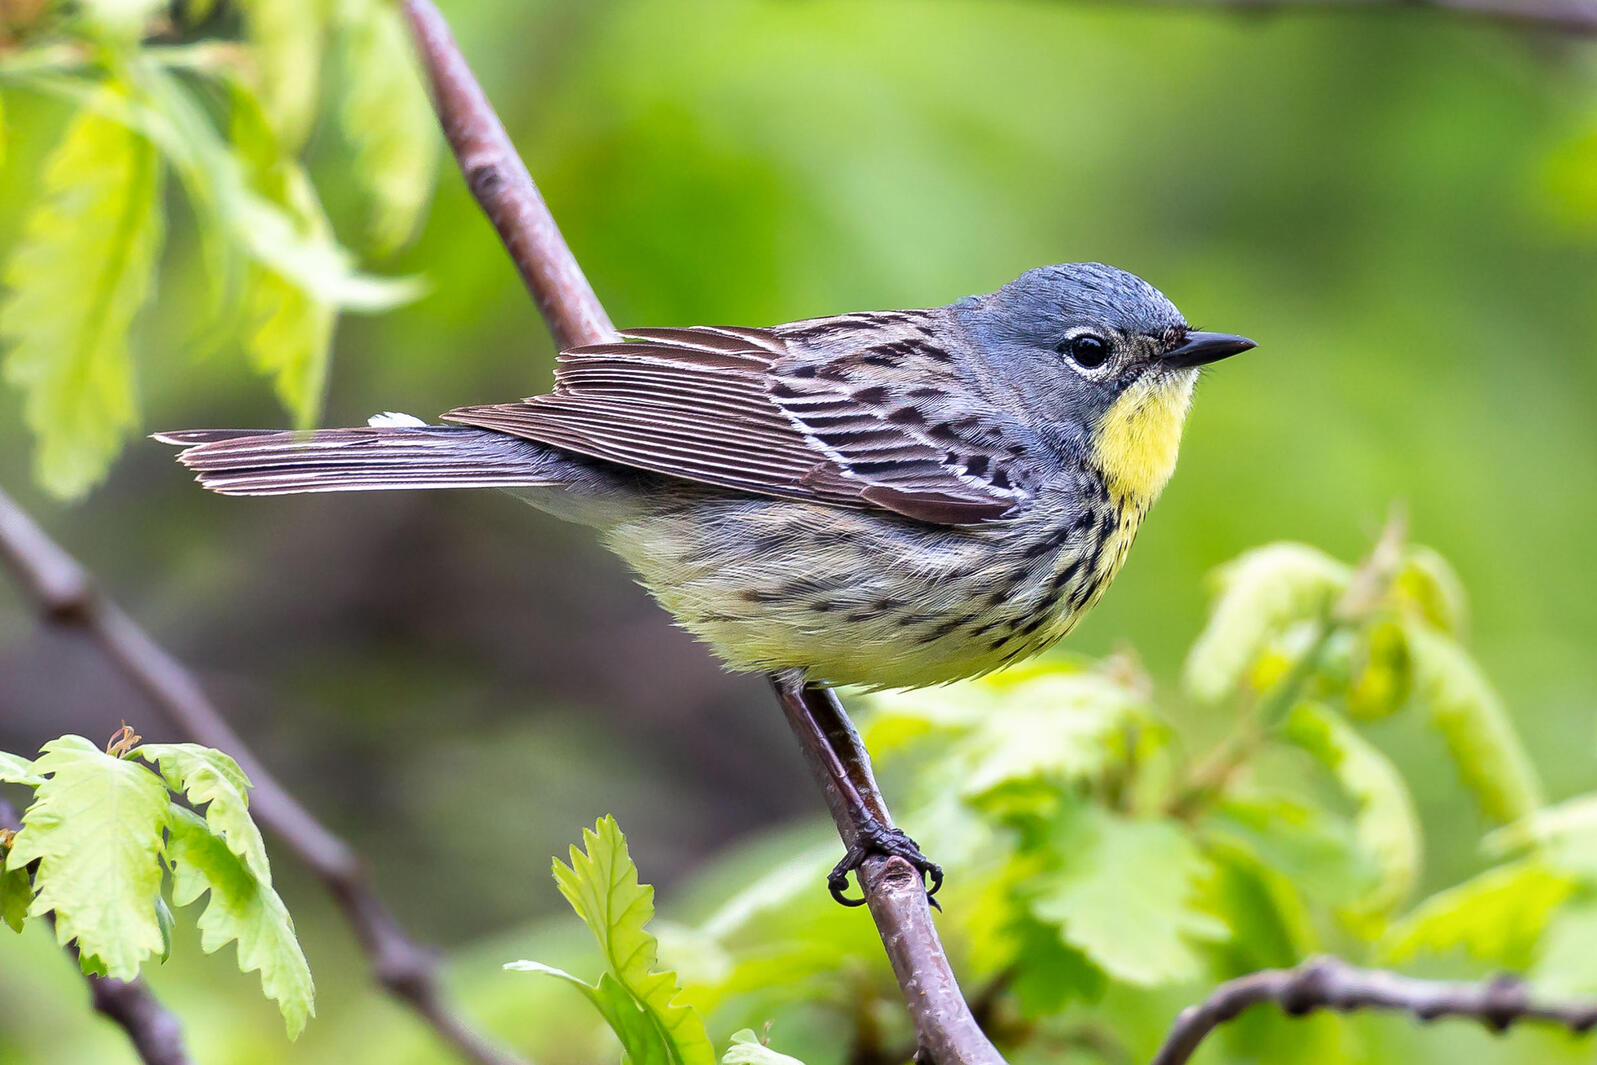 The Central Park Kirtland's Warbler was first spotted on May 11. By May 14, it had seemingly left town—but not before hundreds of birders got to check it out. Bruno Oliveira